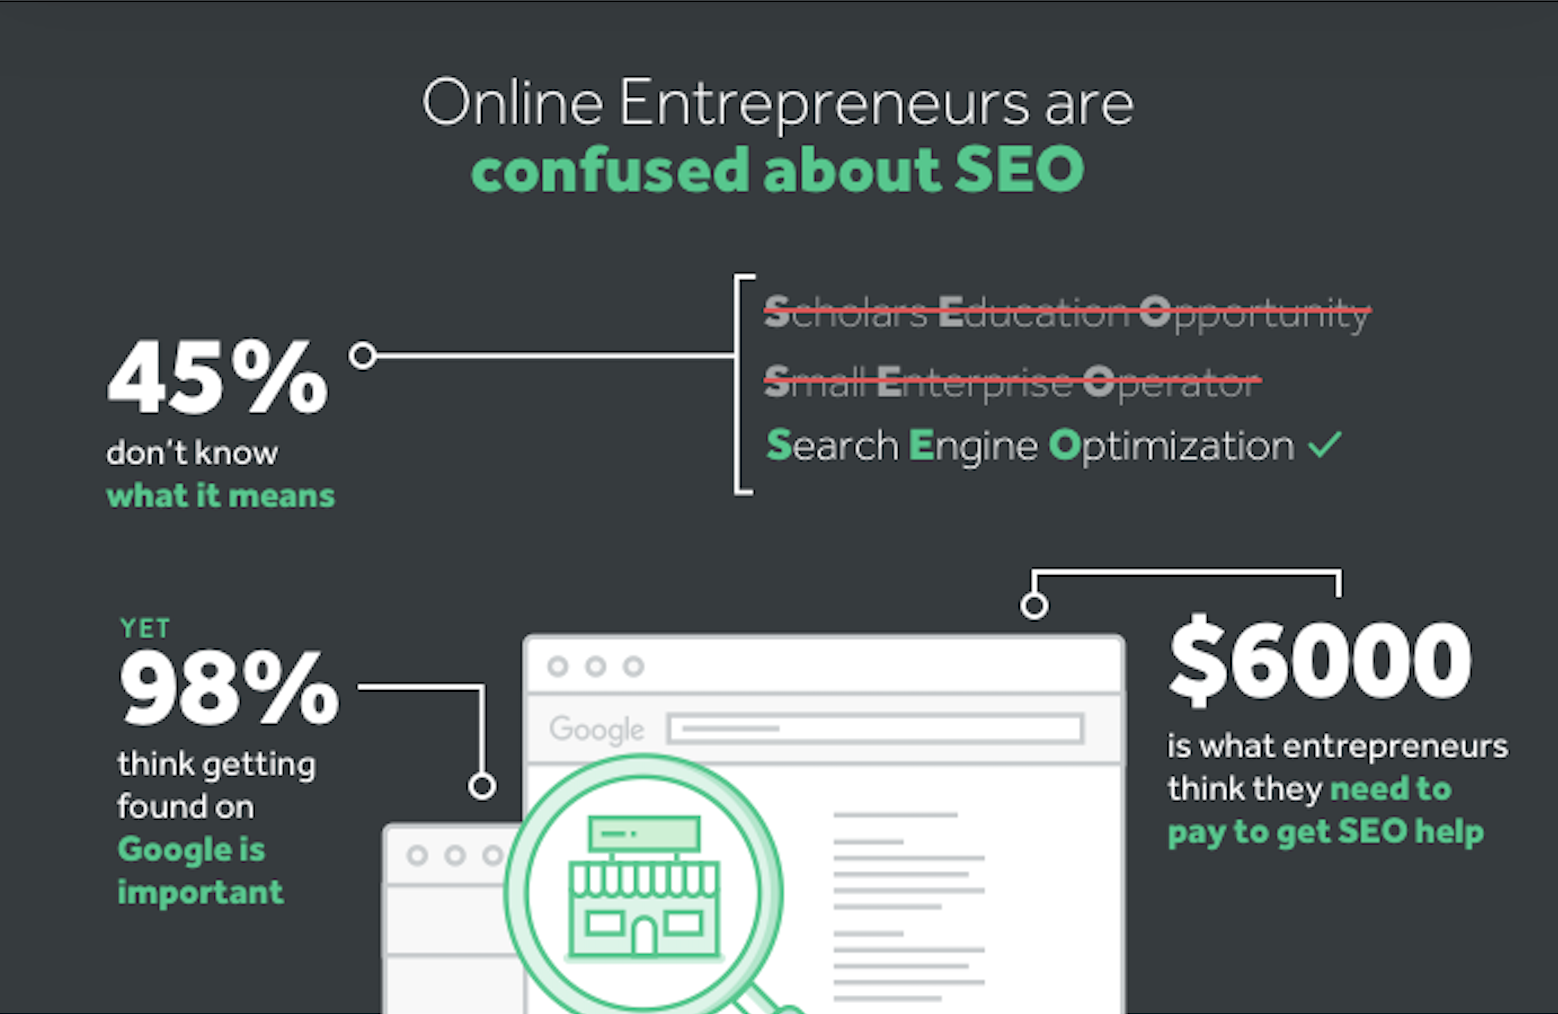 45%25 do not know what SEO means